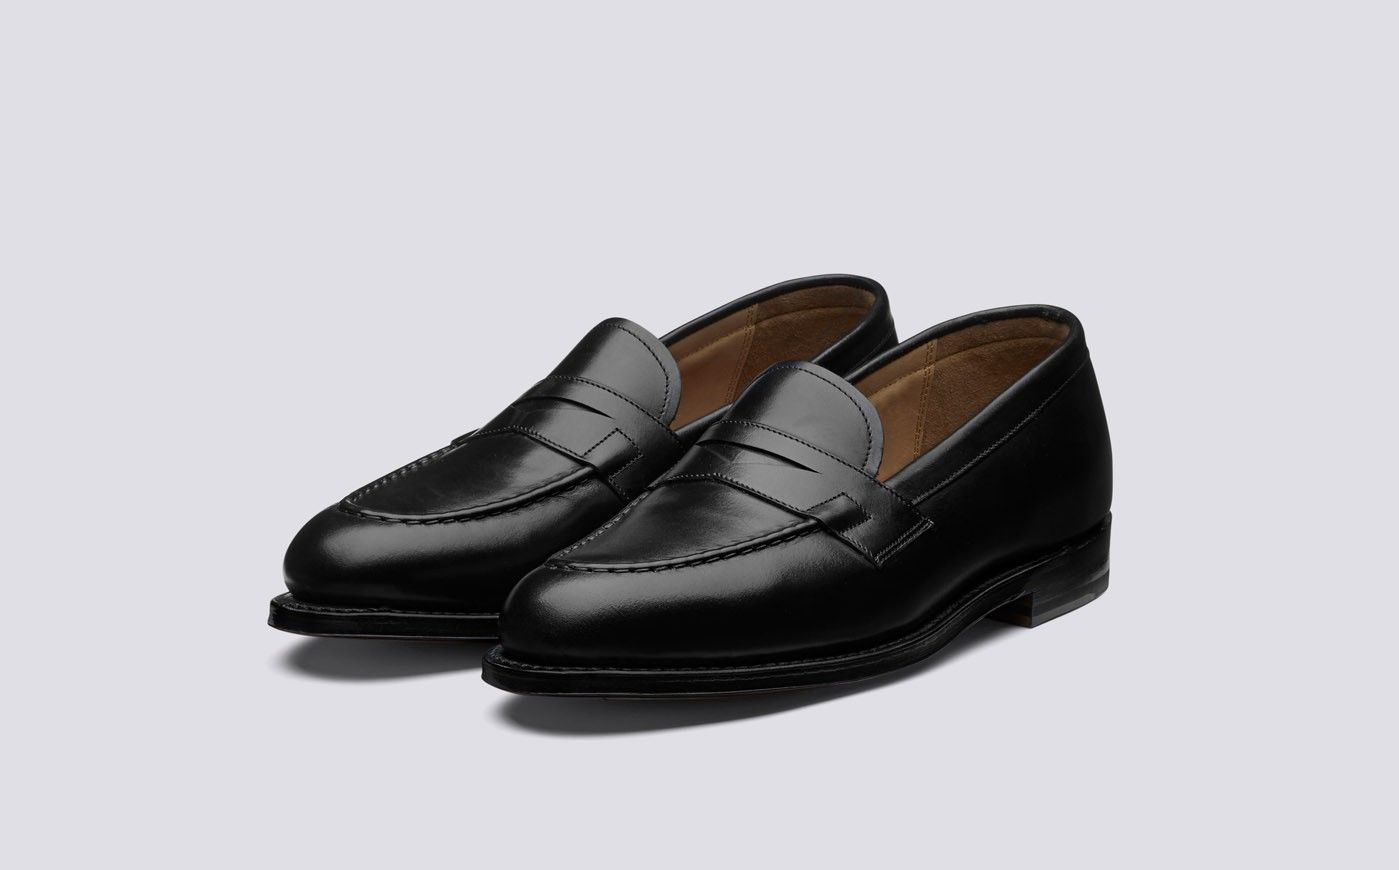 loafers shop near me